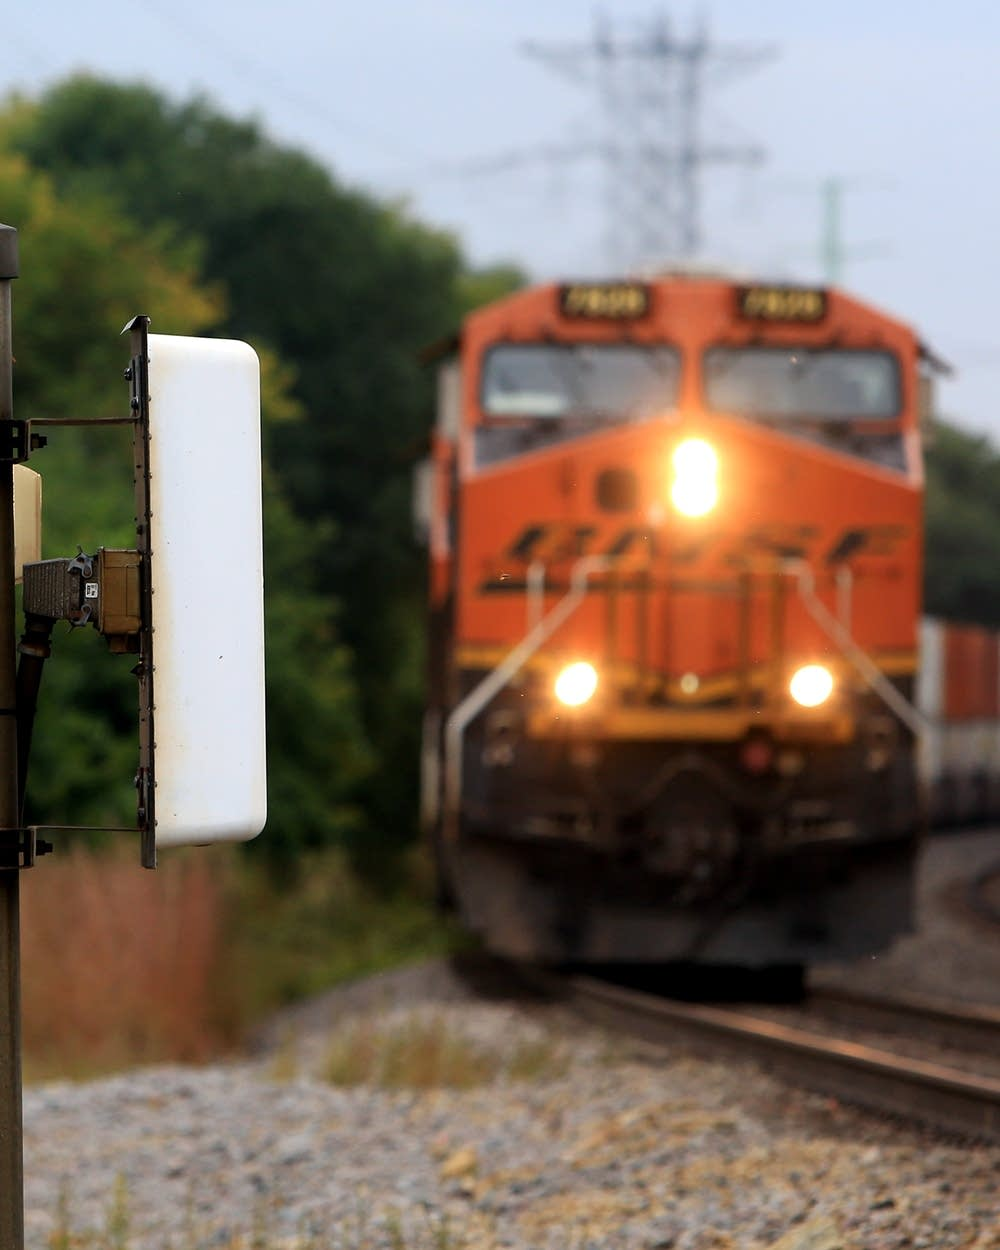 Mystery trains: Crews, communities in the dark on chemical cargo